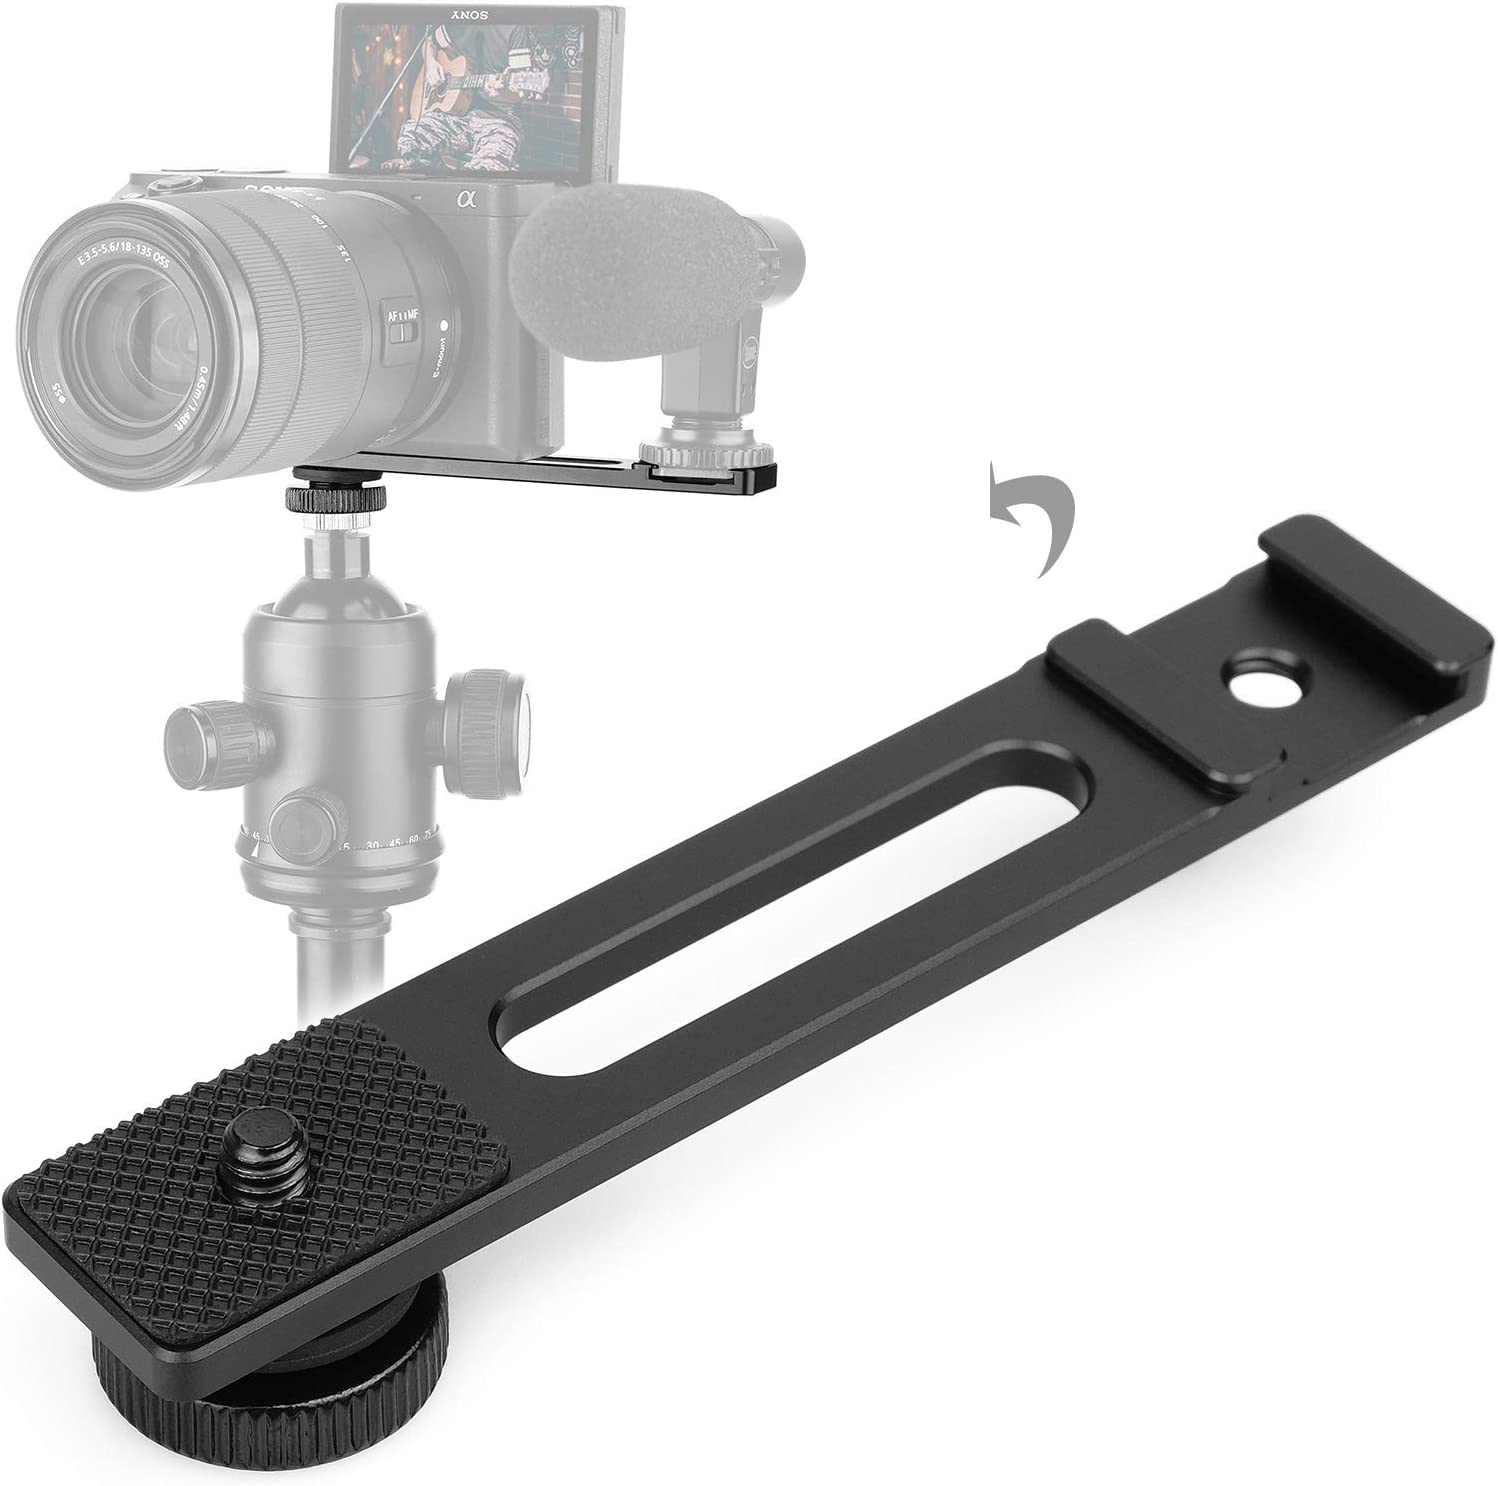 Universal Camera Cold Shoe Extension Bracket,Portable Camcorder Gimbal Extender Plate Mount Bracket Support Stabilizer Accessory Kit with 1//4 Screw Hole,support Monitor,Fill Light,Action Camera